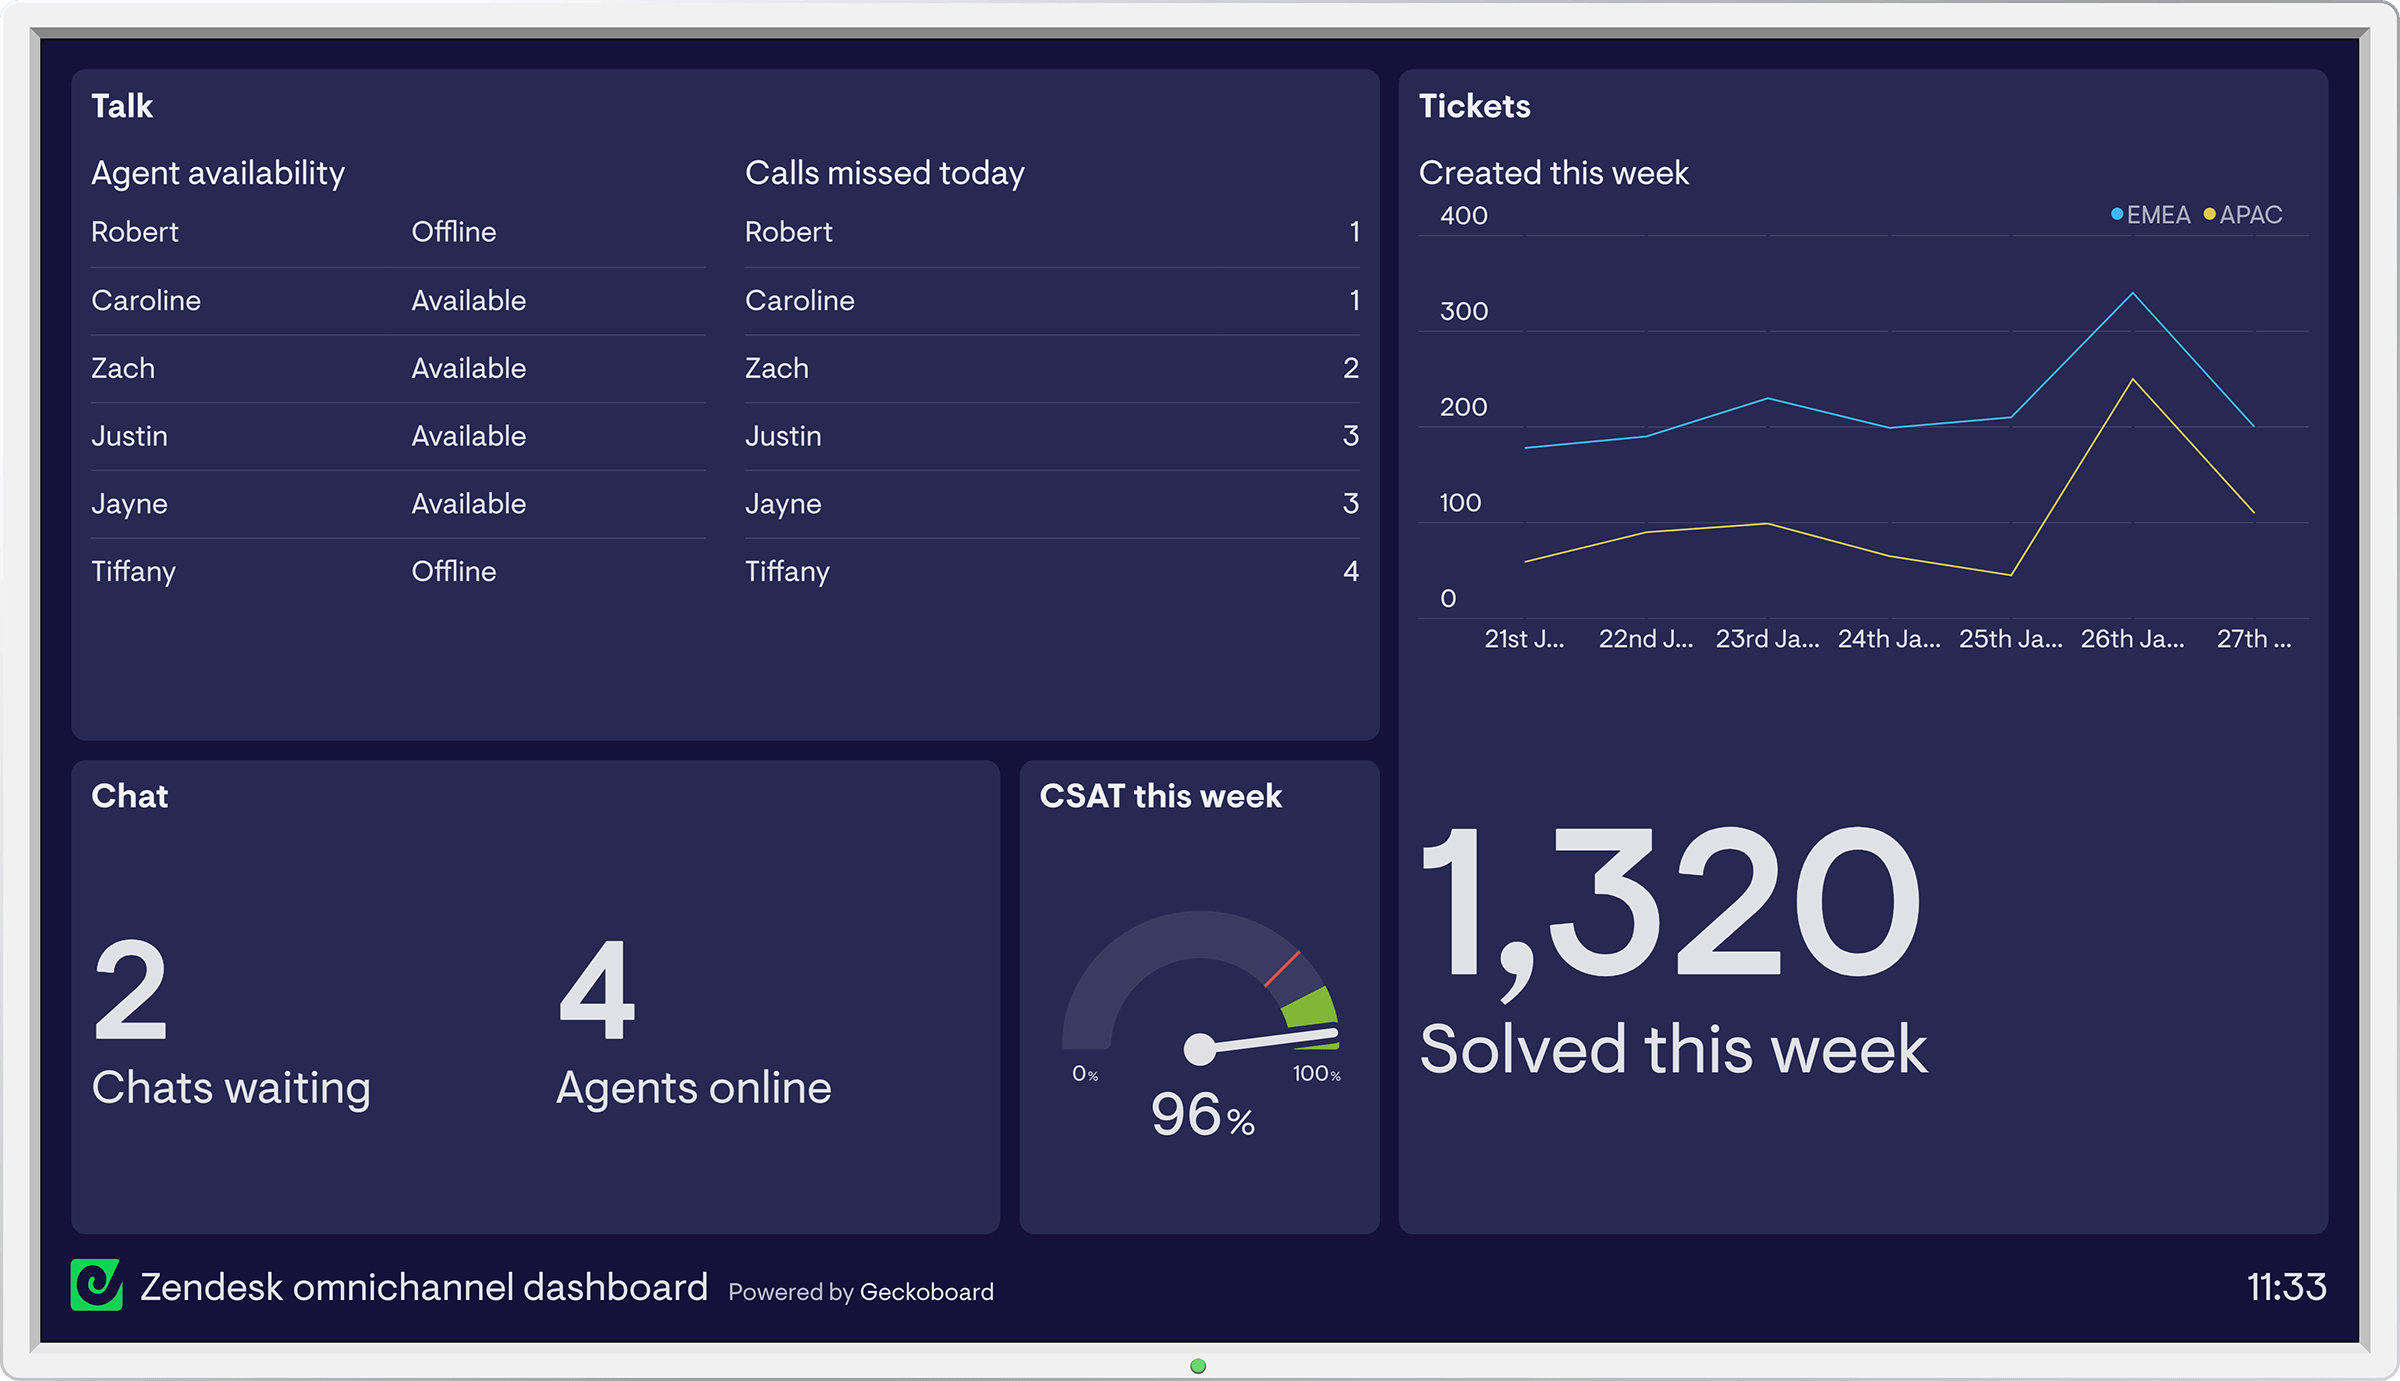 Zendesk Talk dashboard example